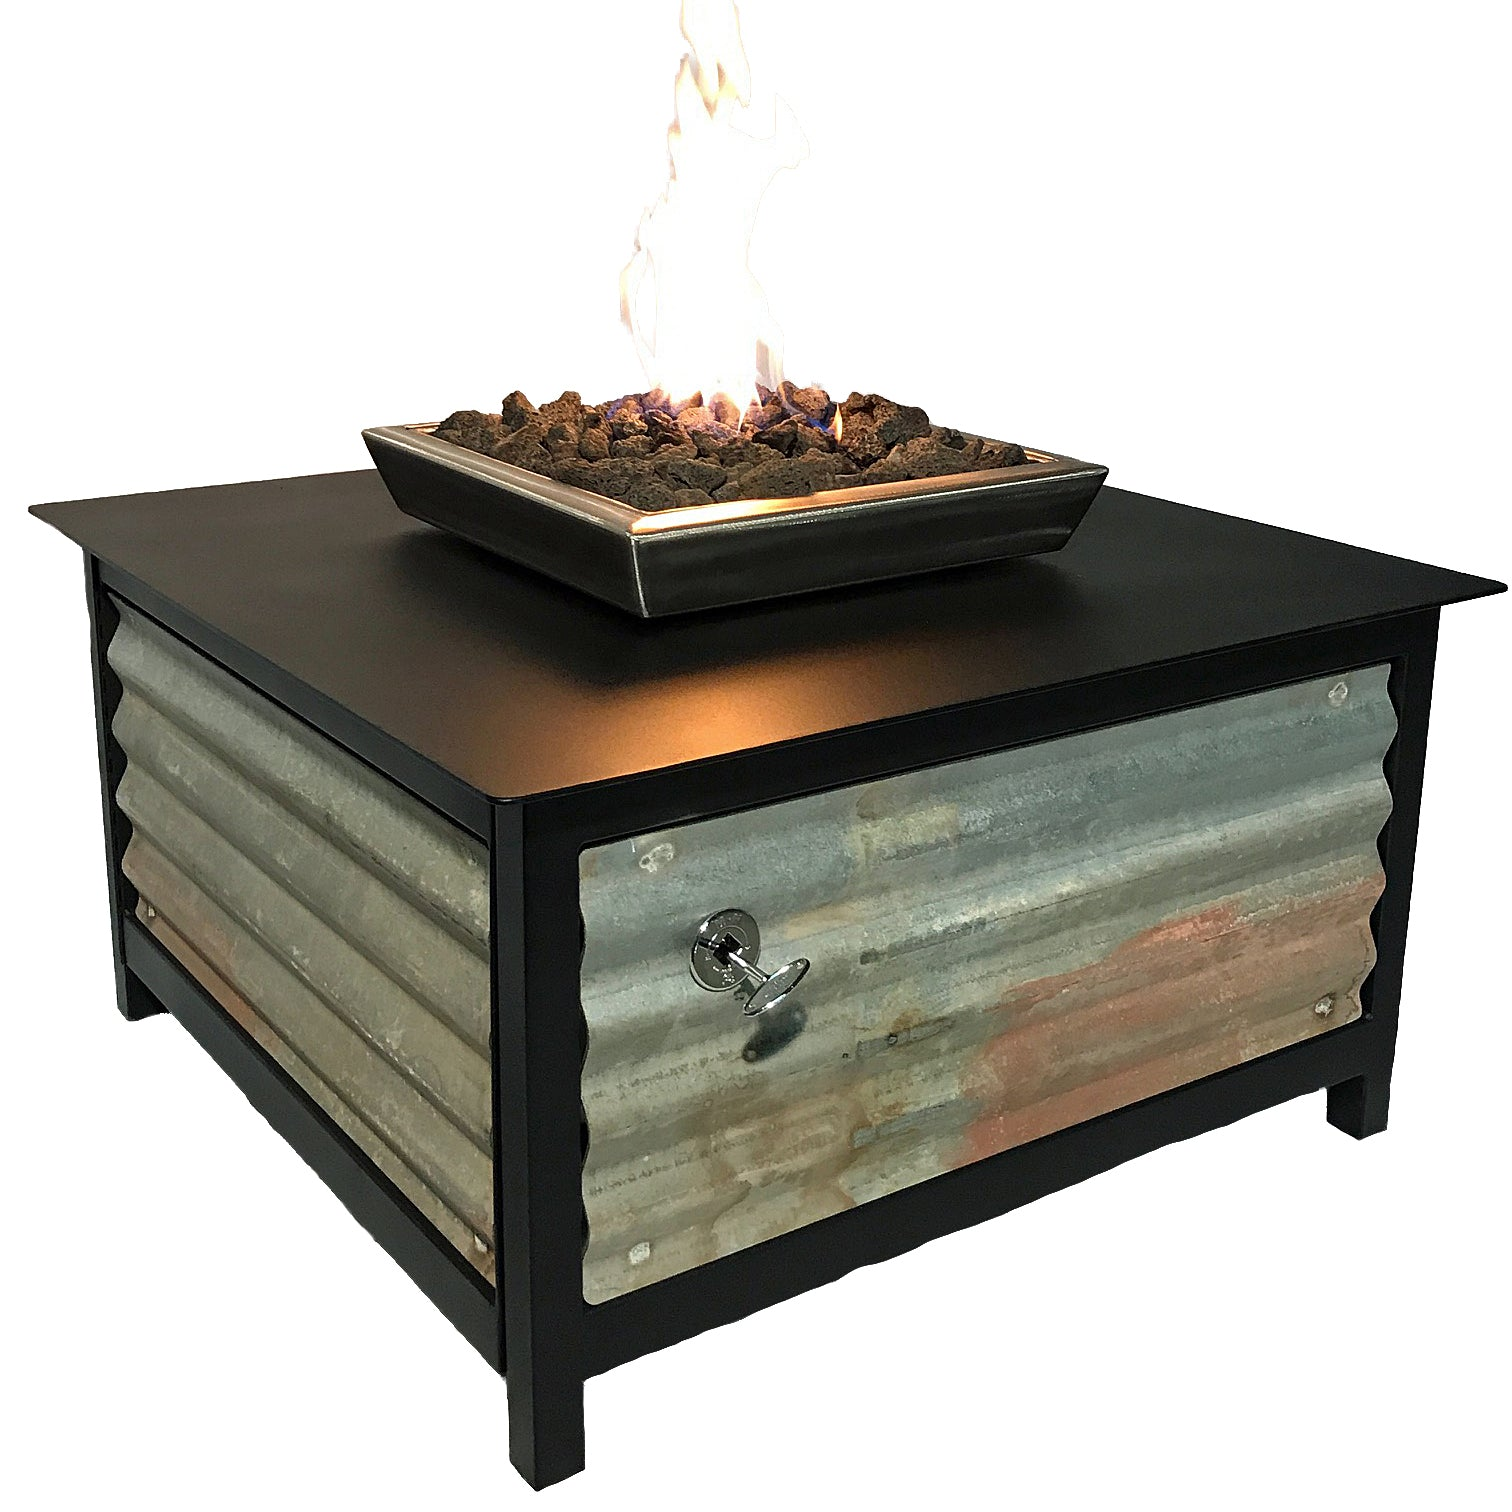 An edgy, urban, contemporary, modern industrial rustic farmhouse style, heavy duty steel Square shaped IMPACT propane or natural gas burning Fire Table or fire pit with salvaged corrugated steel exterior side panels and a raven black powder coated frame and table top for entertaining or relaxing outdoors on your patio, rooftop deck or in your garden.  Made in America USA.